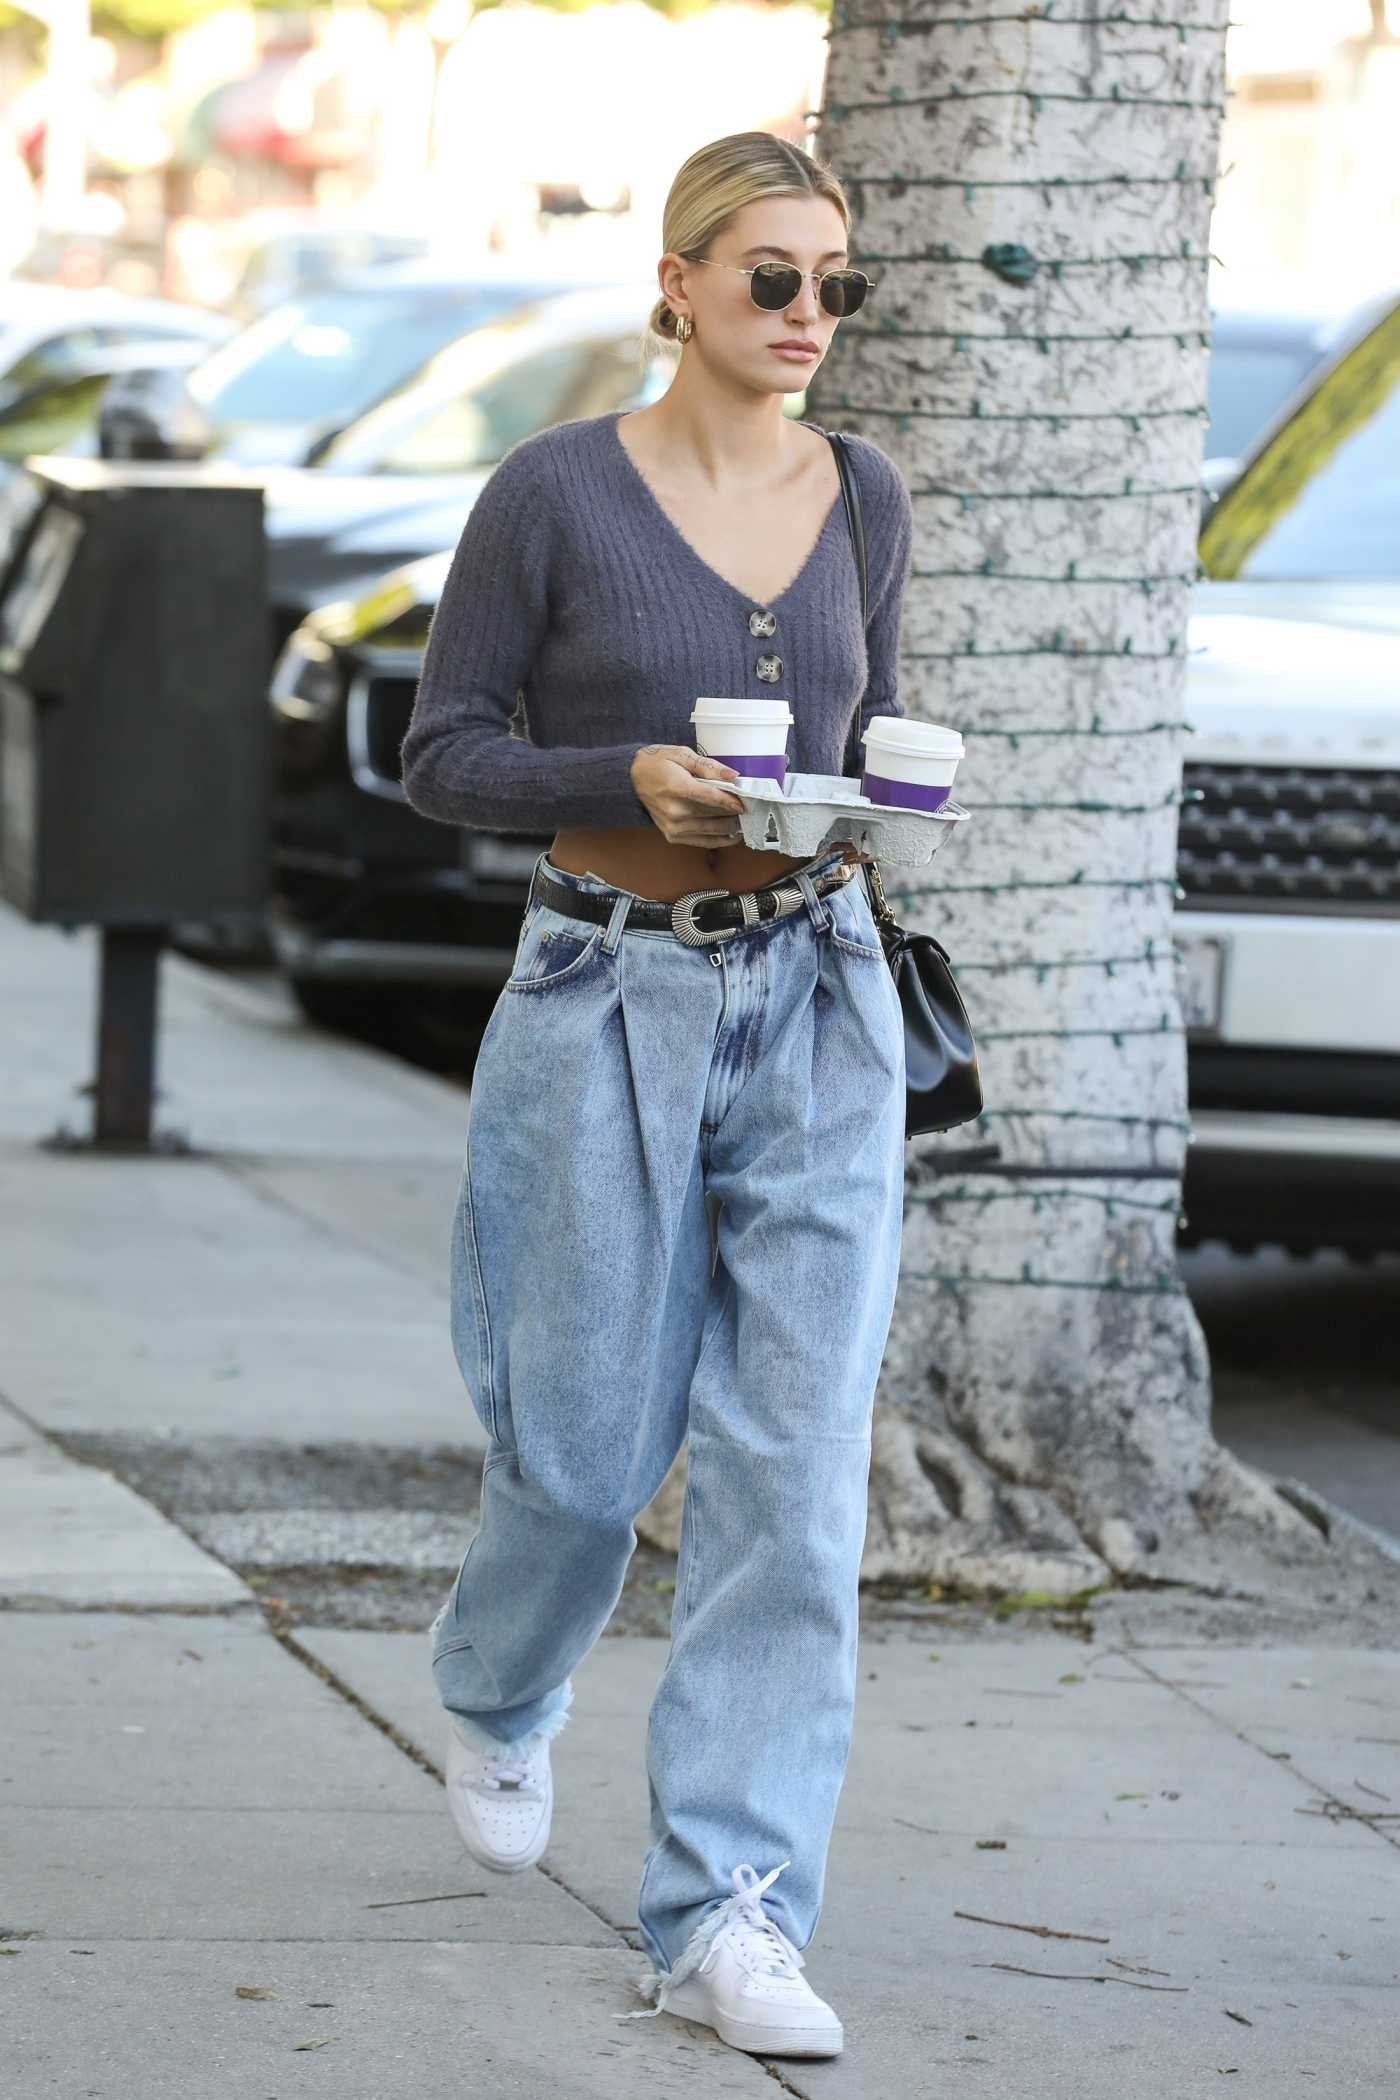 Hailey Baldwin in a White Nike Sneakers Was Seen Out in Beverly Hills 02/04/2020